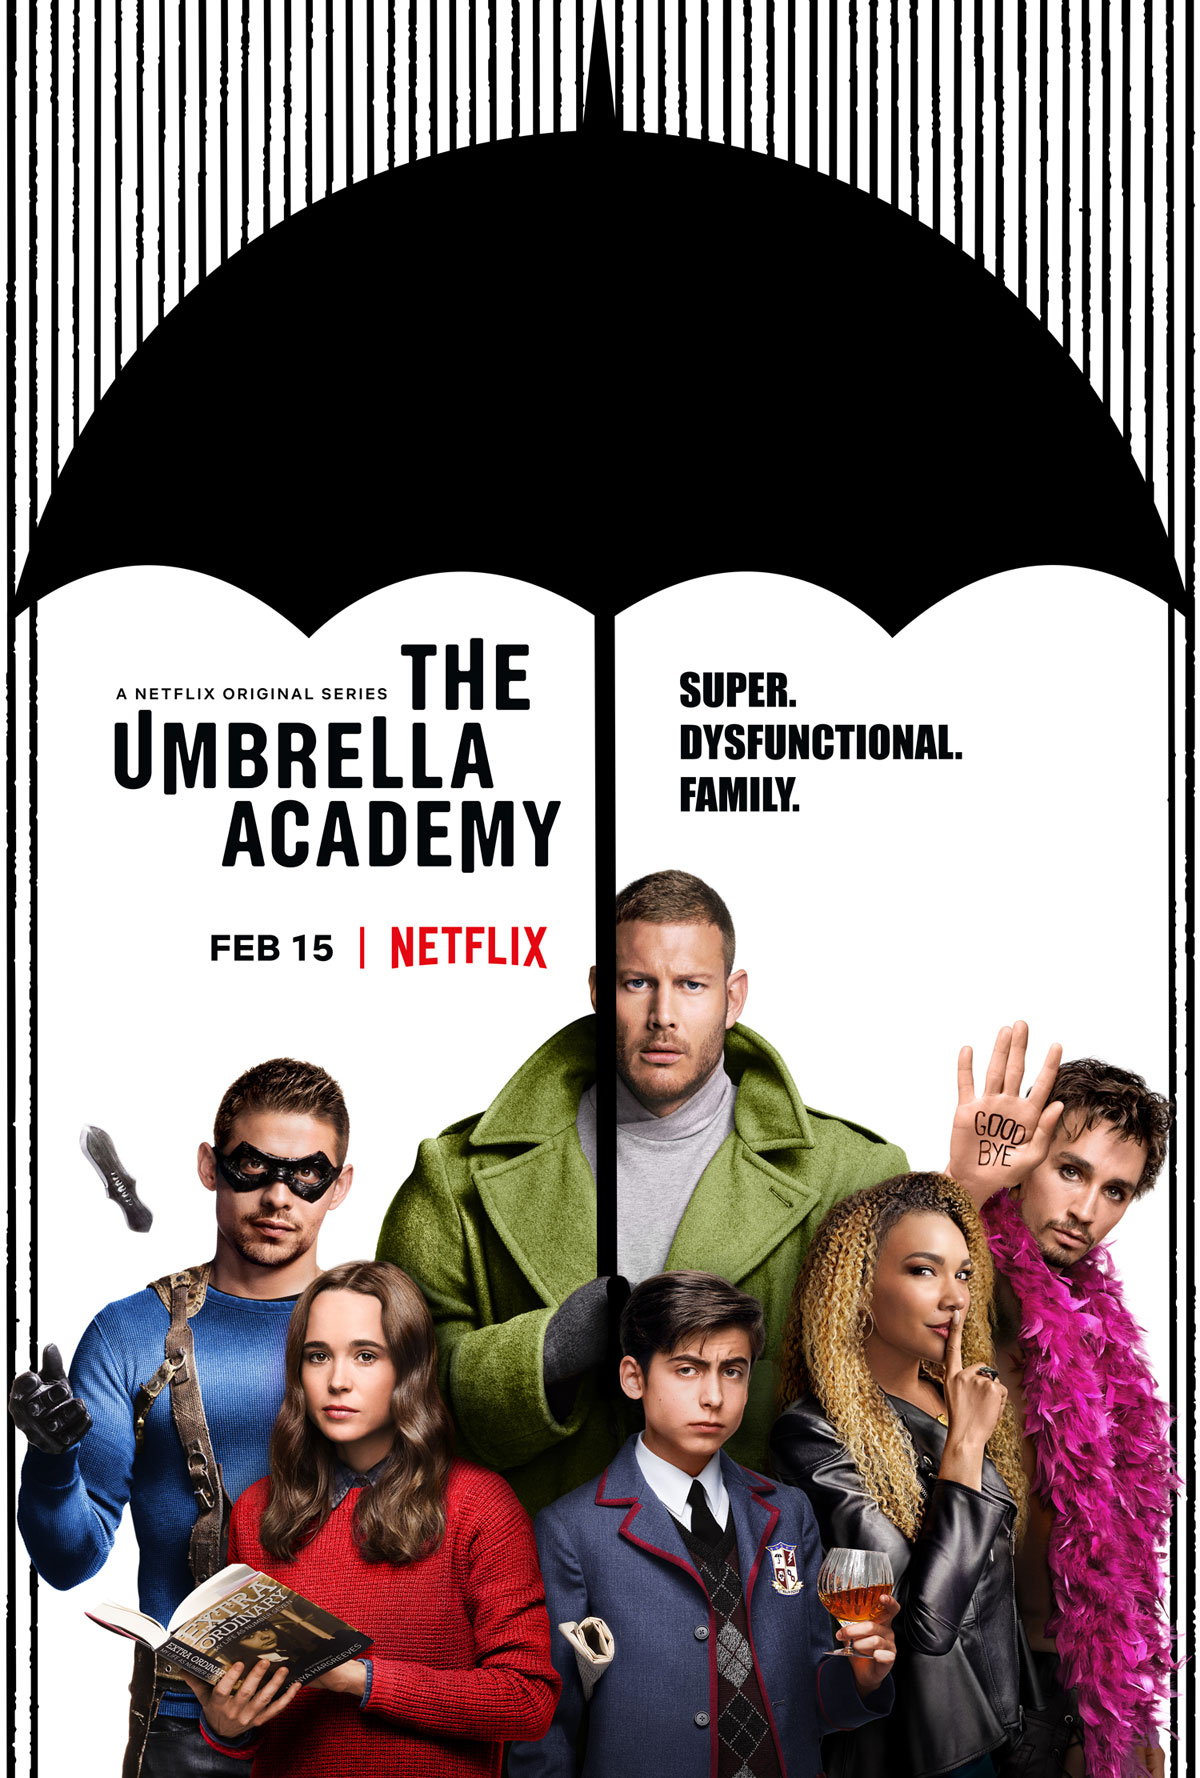 The Umbrella Academy Season 1